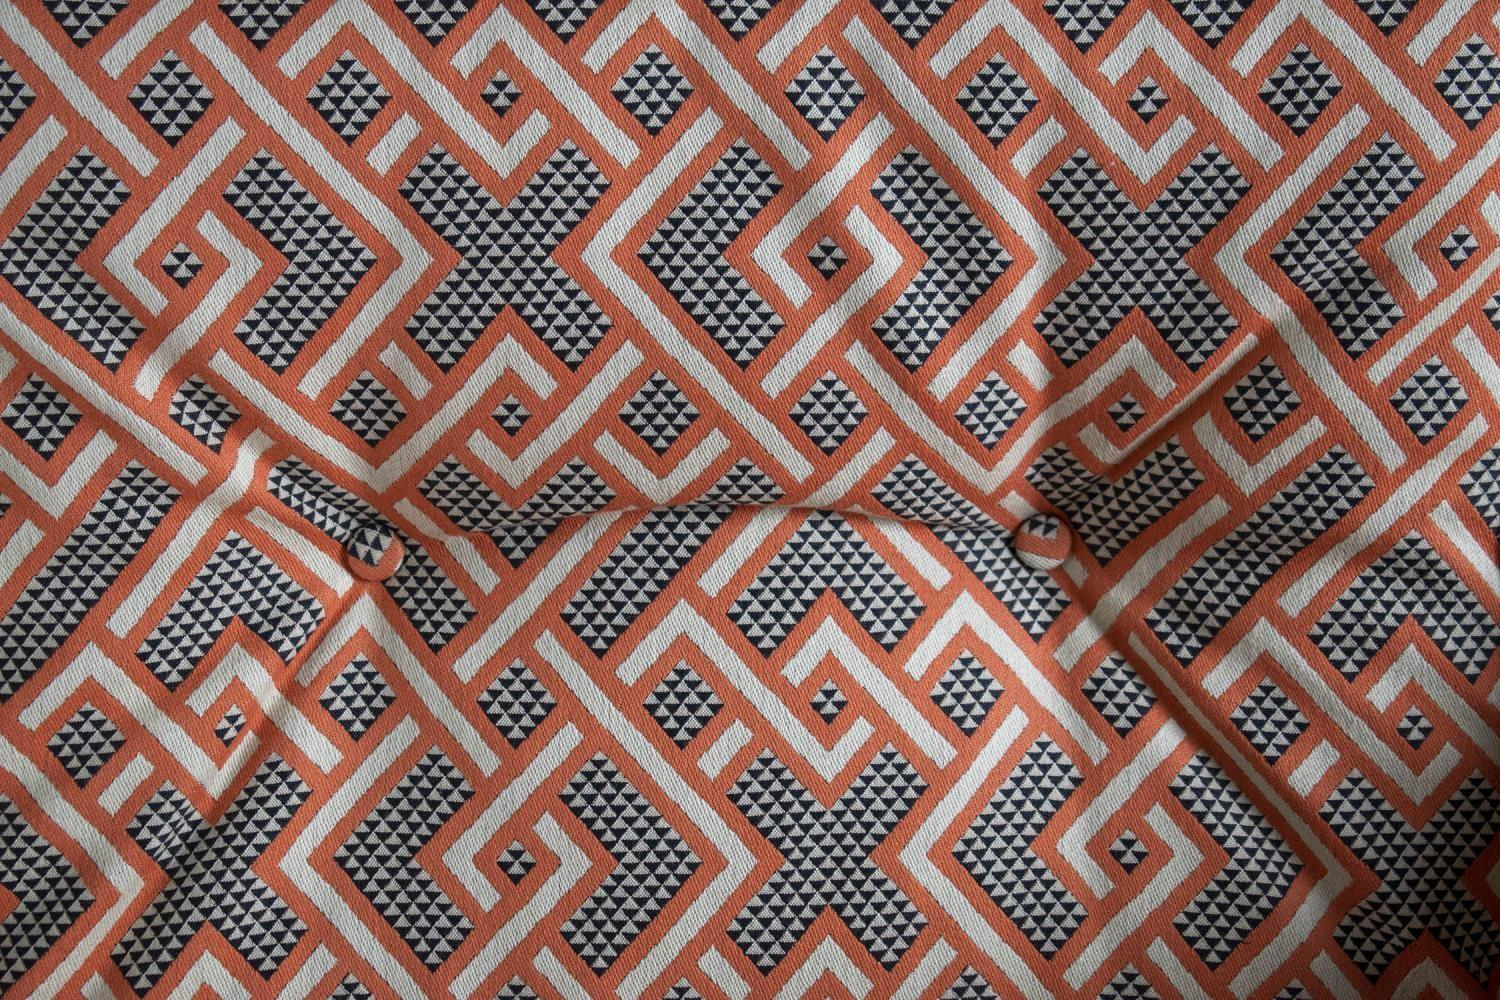 SWIVEL CHAIR, mid 20th century Swedish in Linwood peach, black and white geometric material and - Image 3 of 3